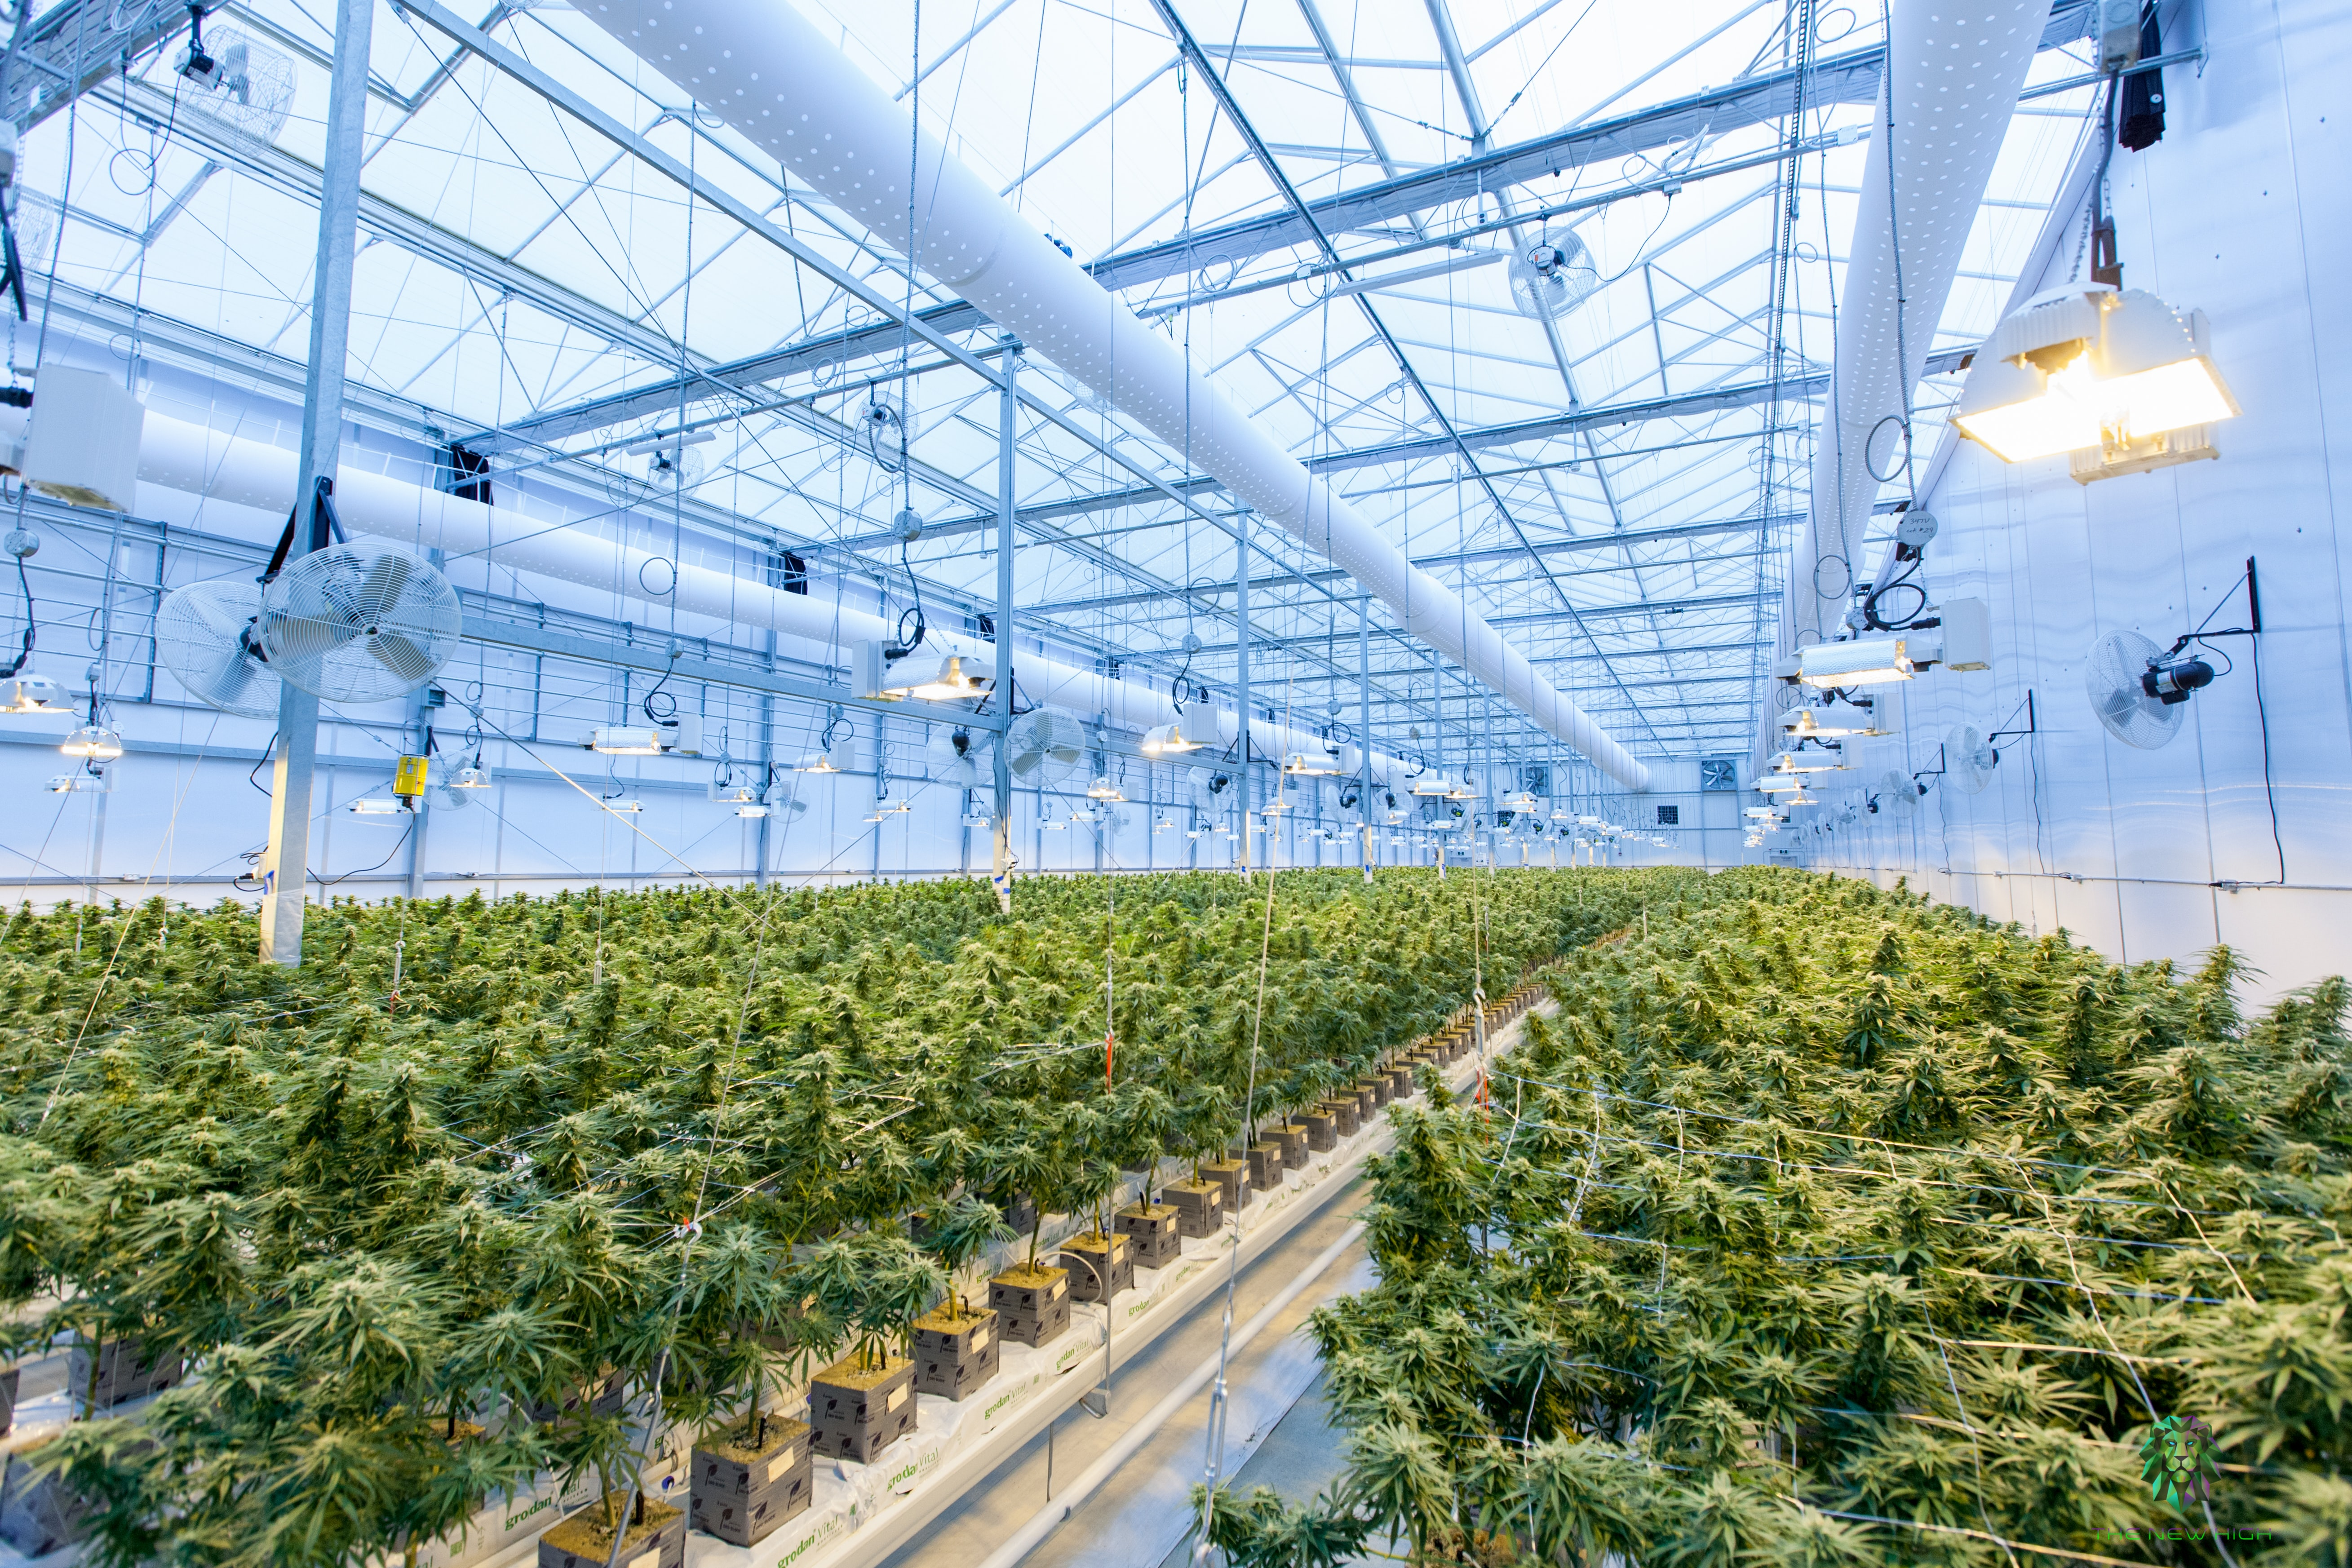 CannaTech: how are data & technology changing the legal cannabis industry?